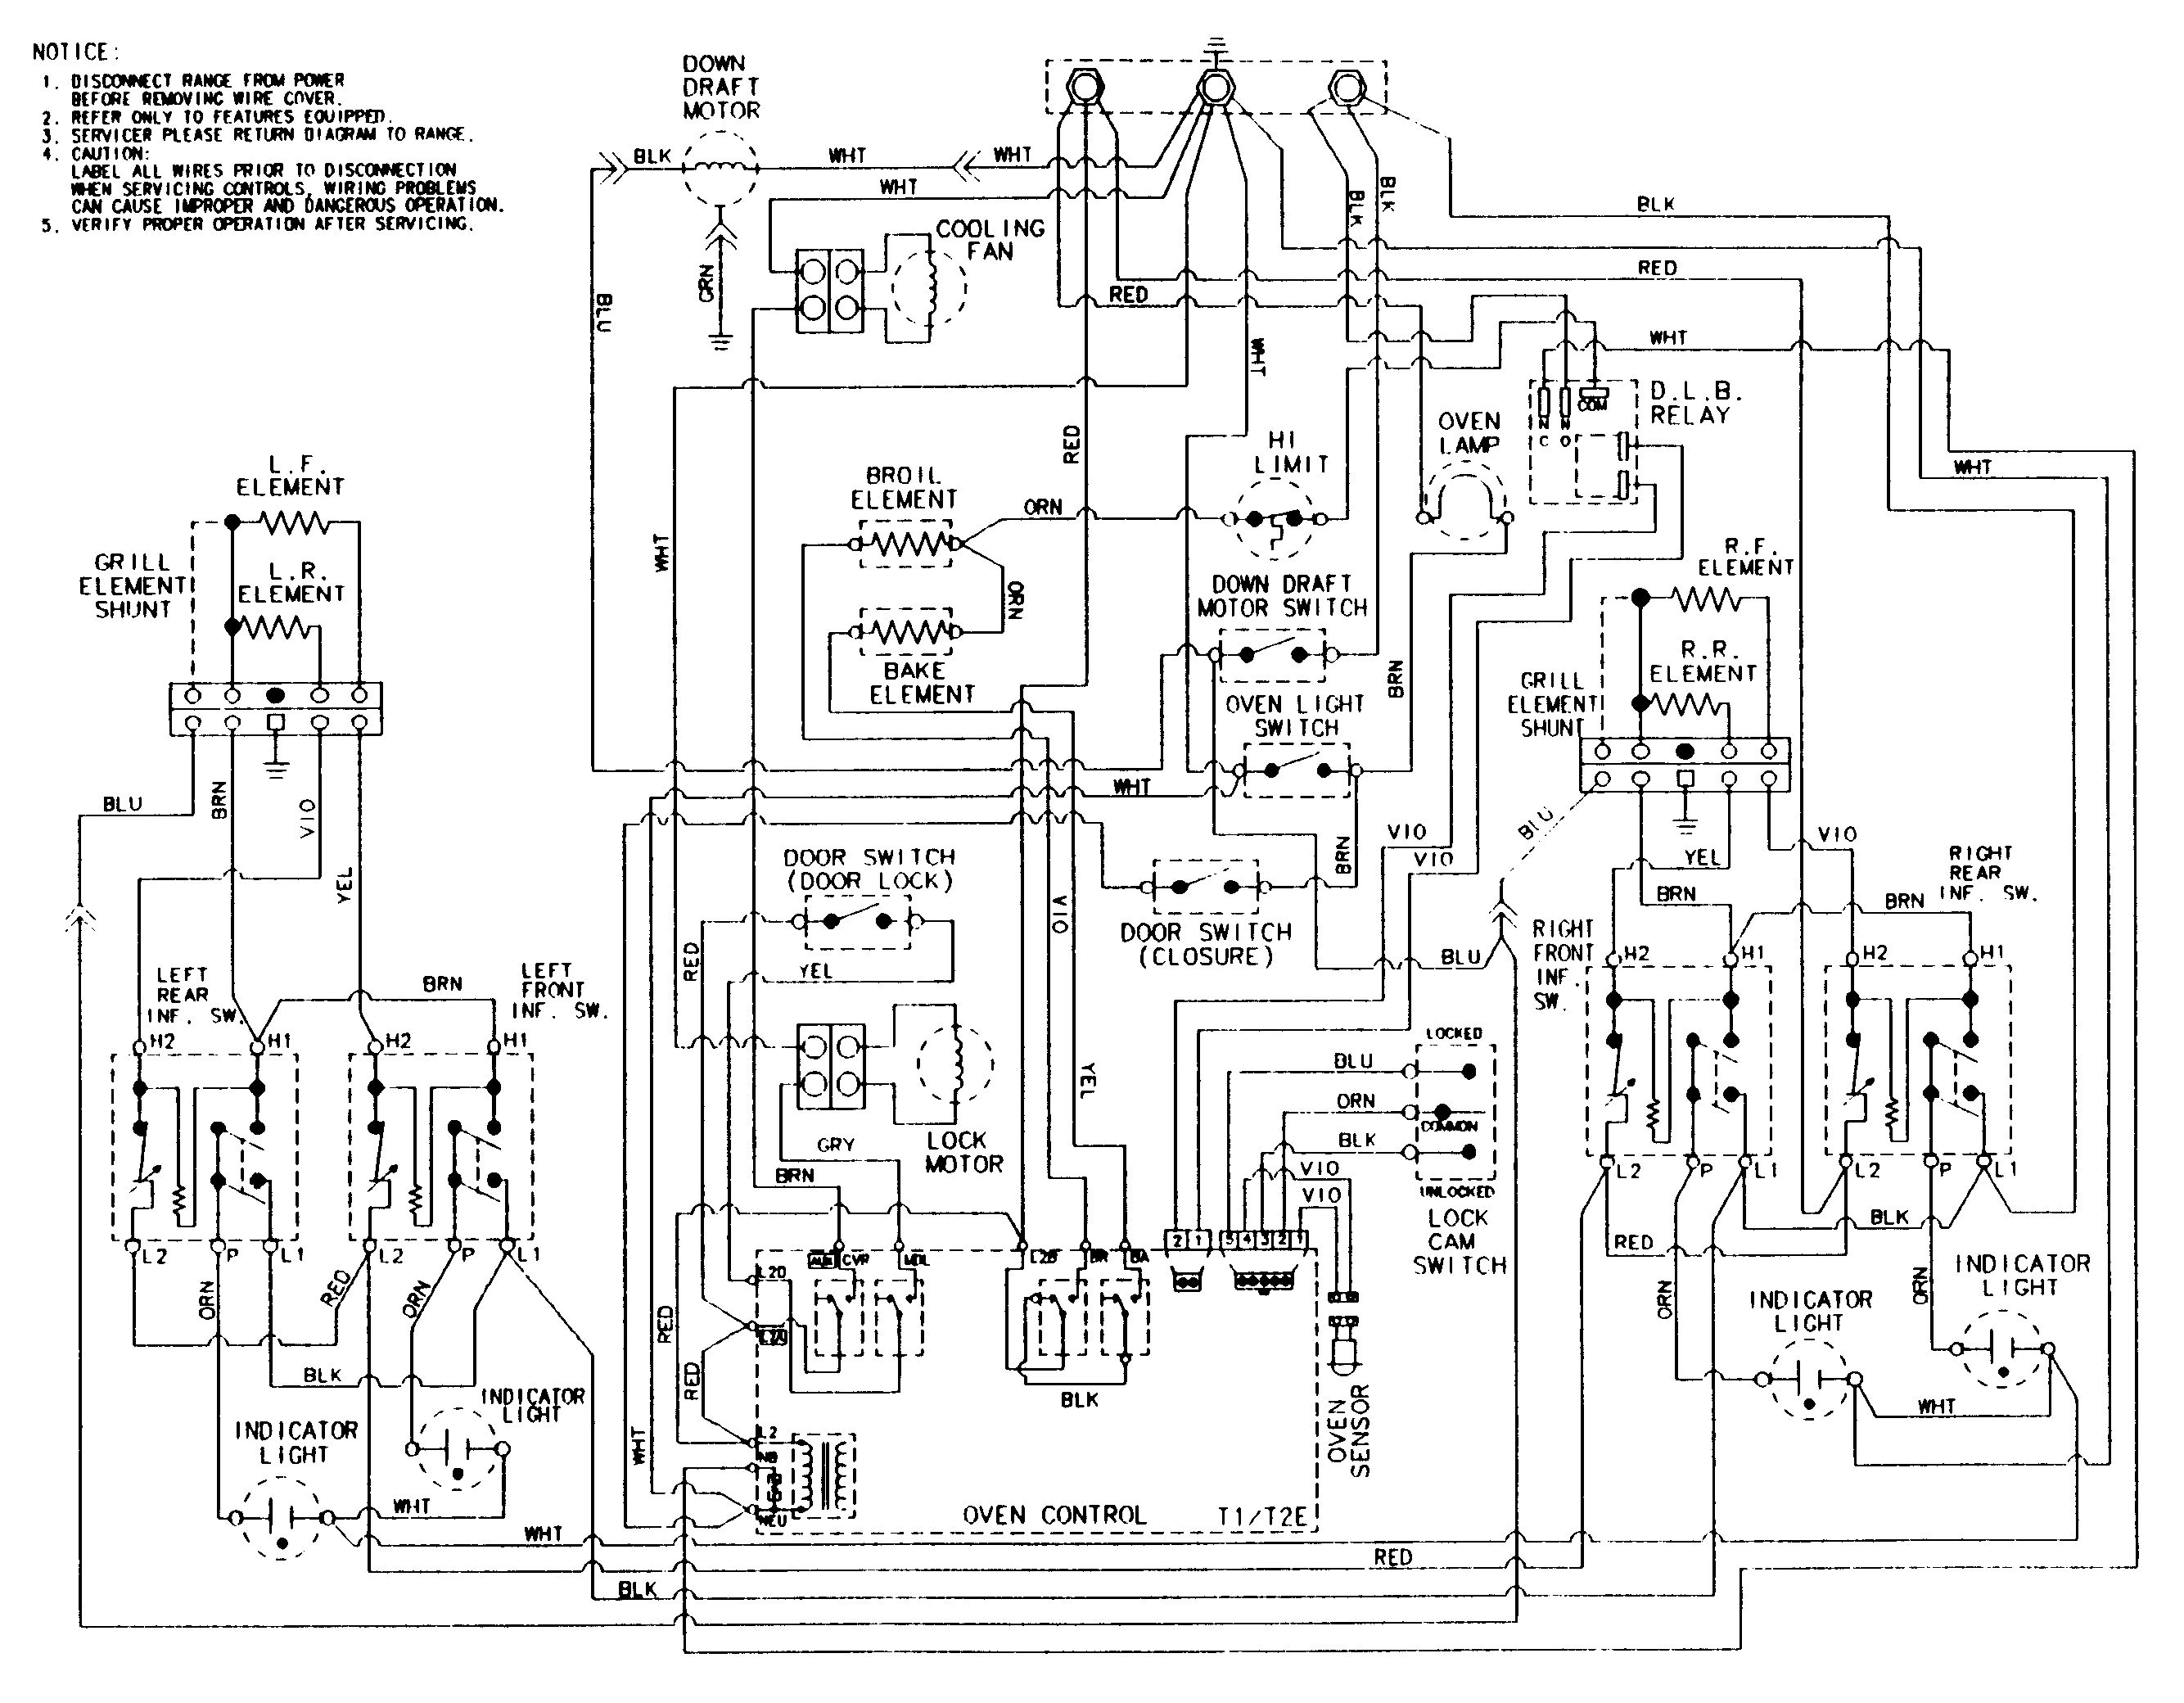 Wiring Information Diagram And Parts List For Jennair